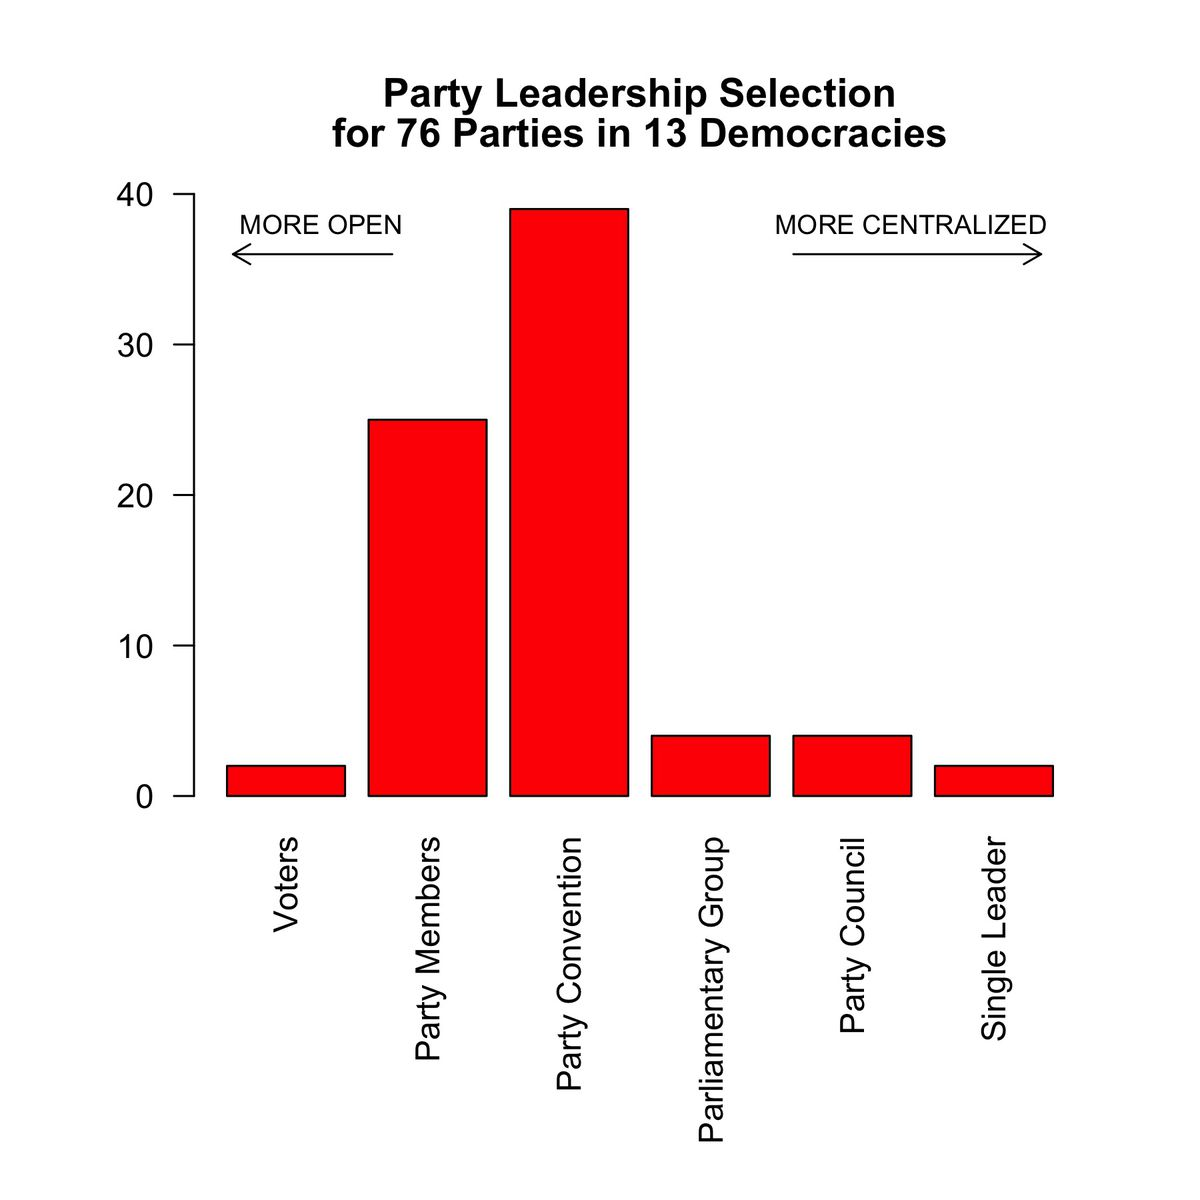 Data and classifications from Pilet and Cross (2014),The Selection of Political Party Leaders in Contemporary Parliamentary Democracies. Countries included are Australia, Austria, Belgium, Canada, Germany, Hungary, Israel, Italy, Norway, Portugal, Romania, Spain, and the United Kingdom.